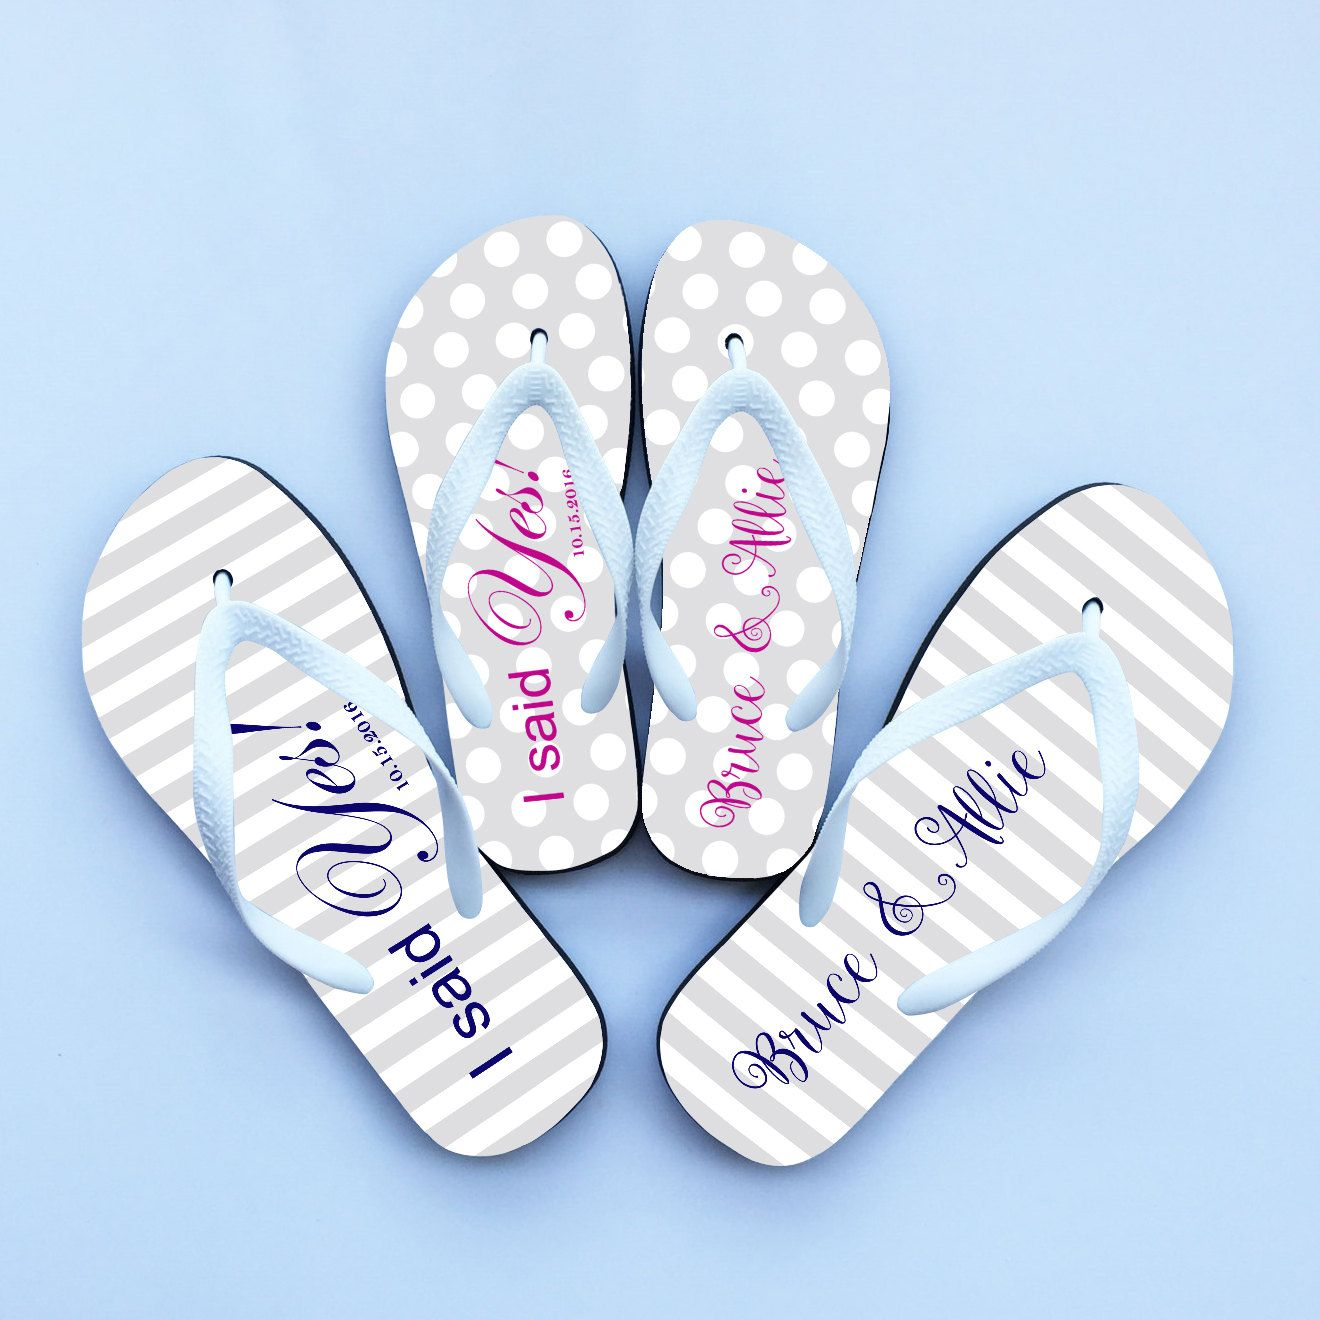 39802679ad2b Personalize Flip Flops